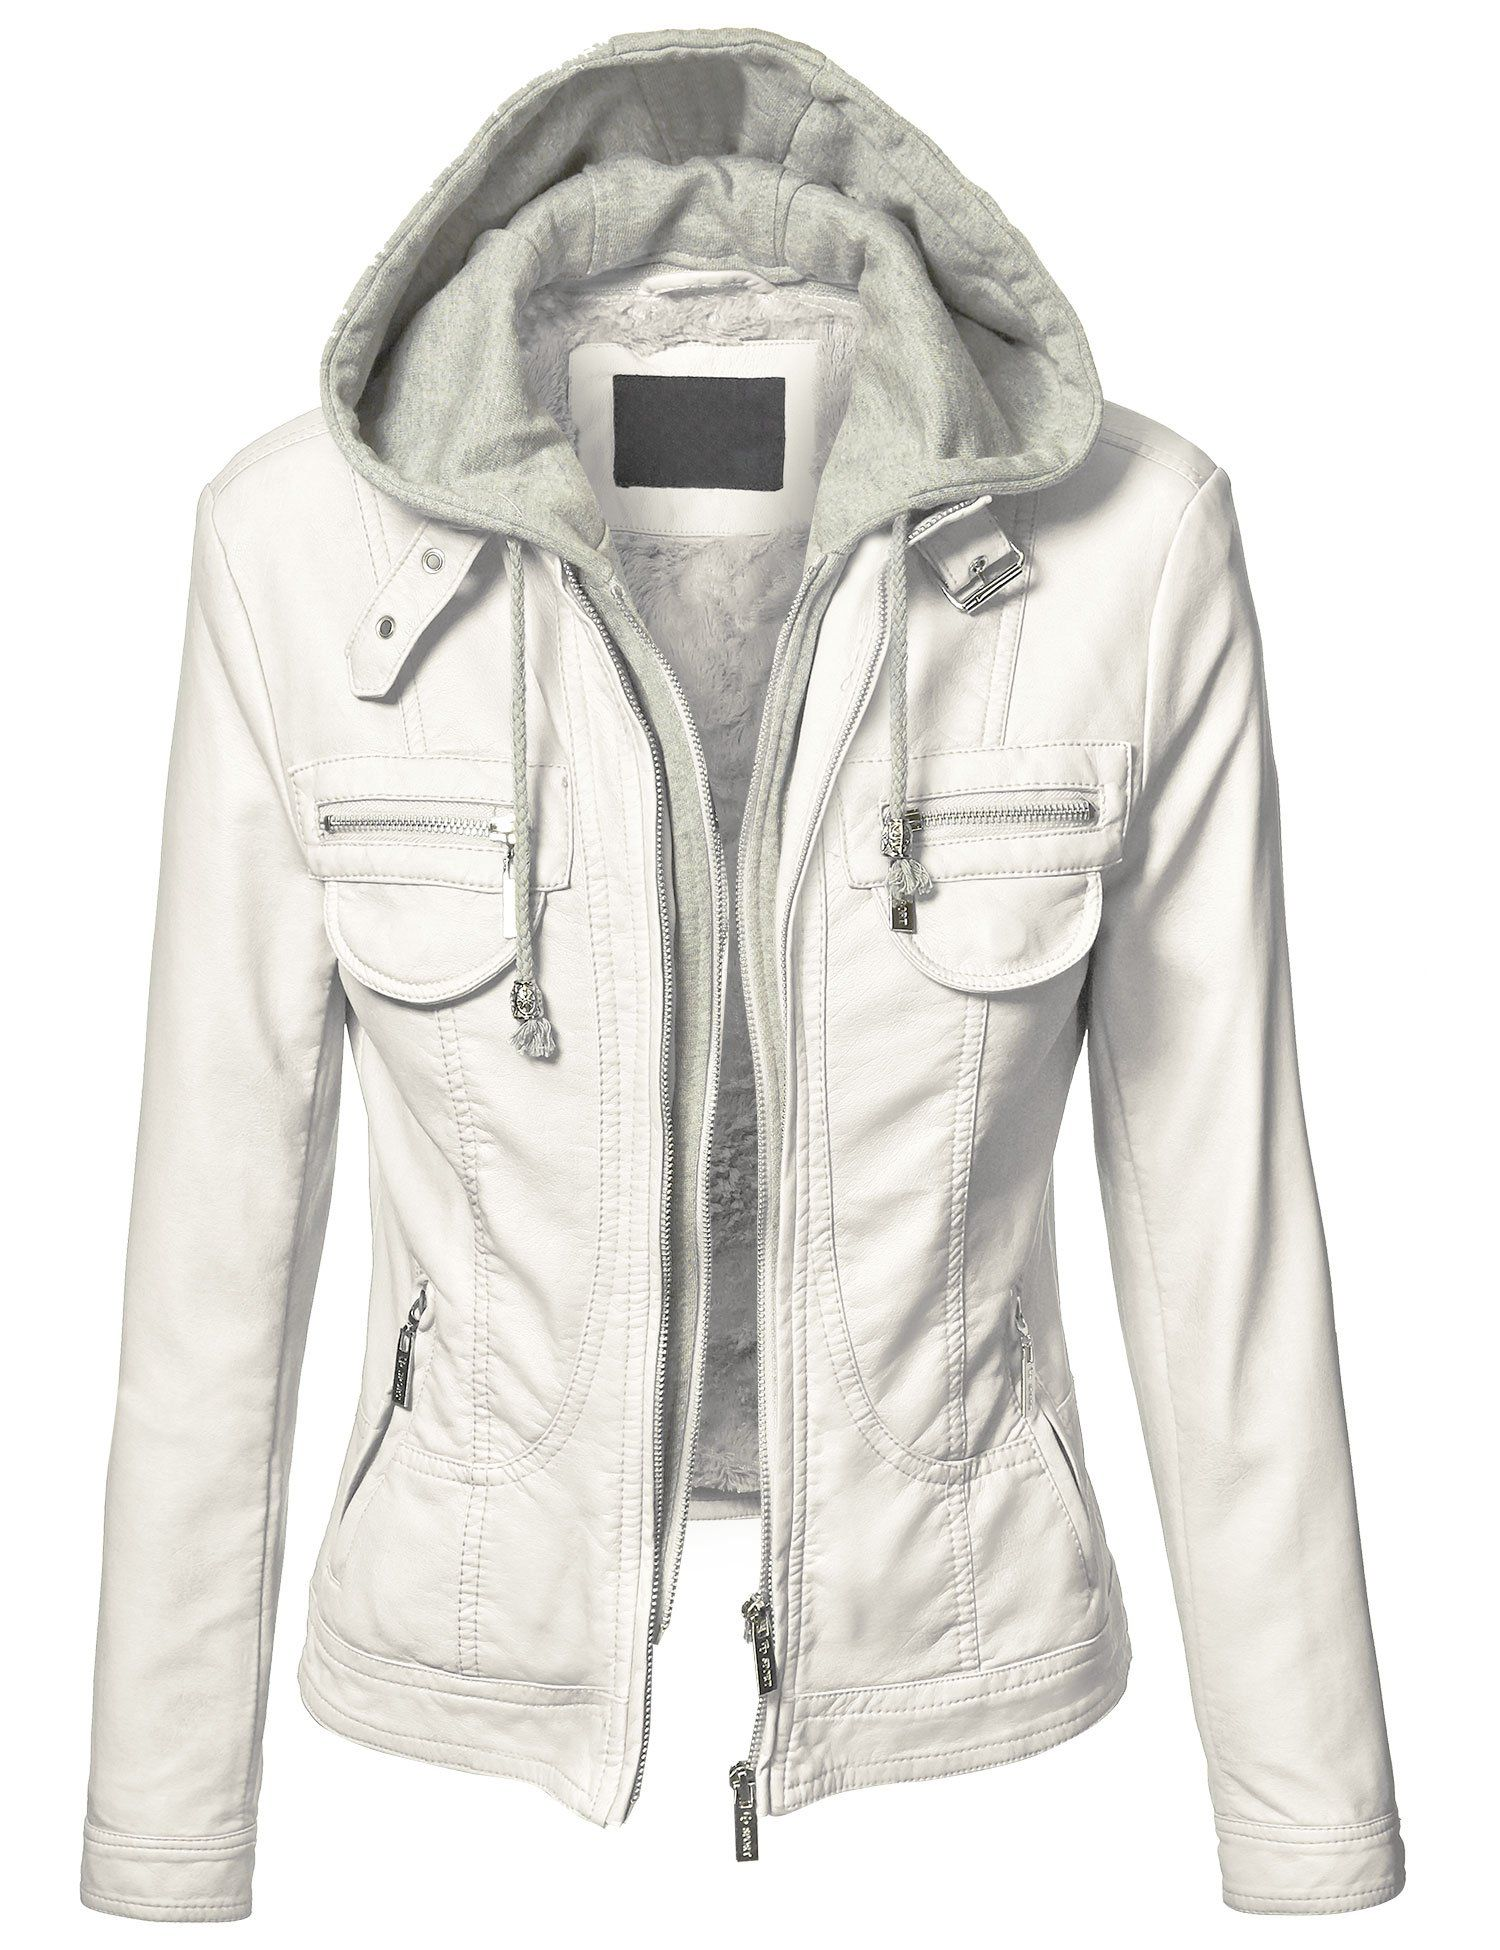 The Casual Grey Womens Faux Leather Jacket with Hood